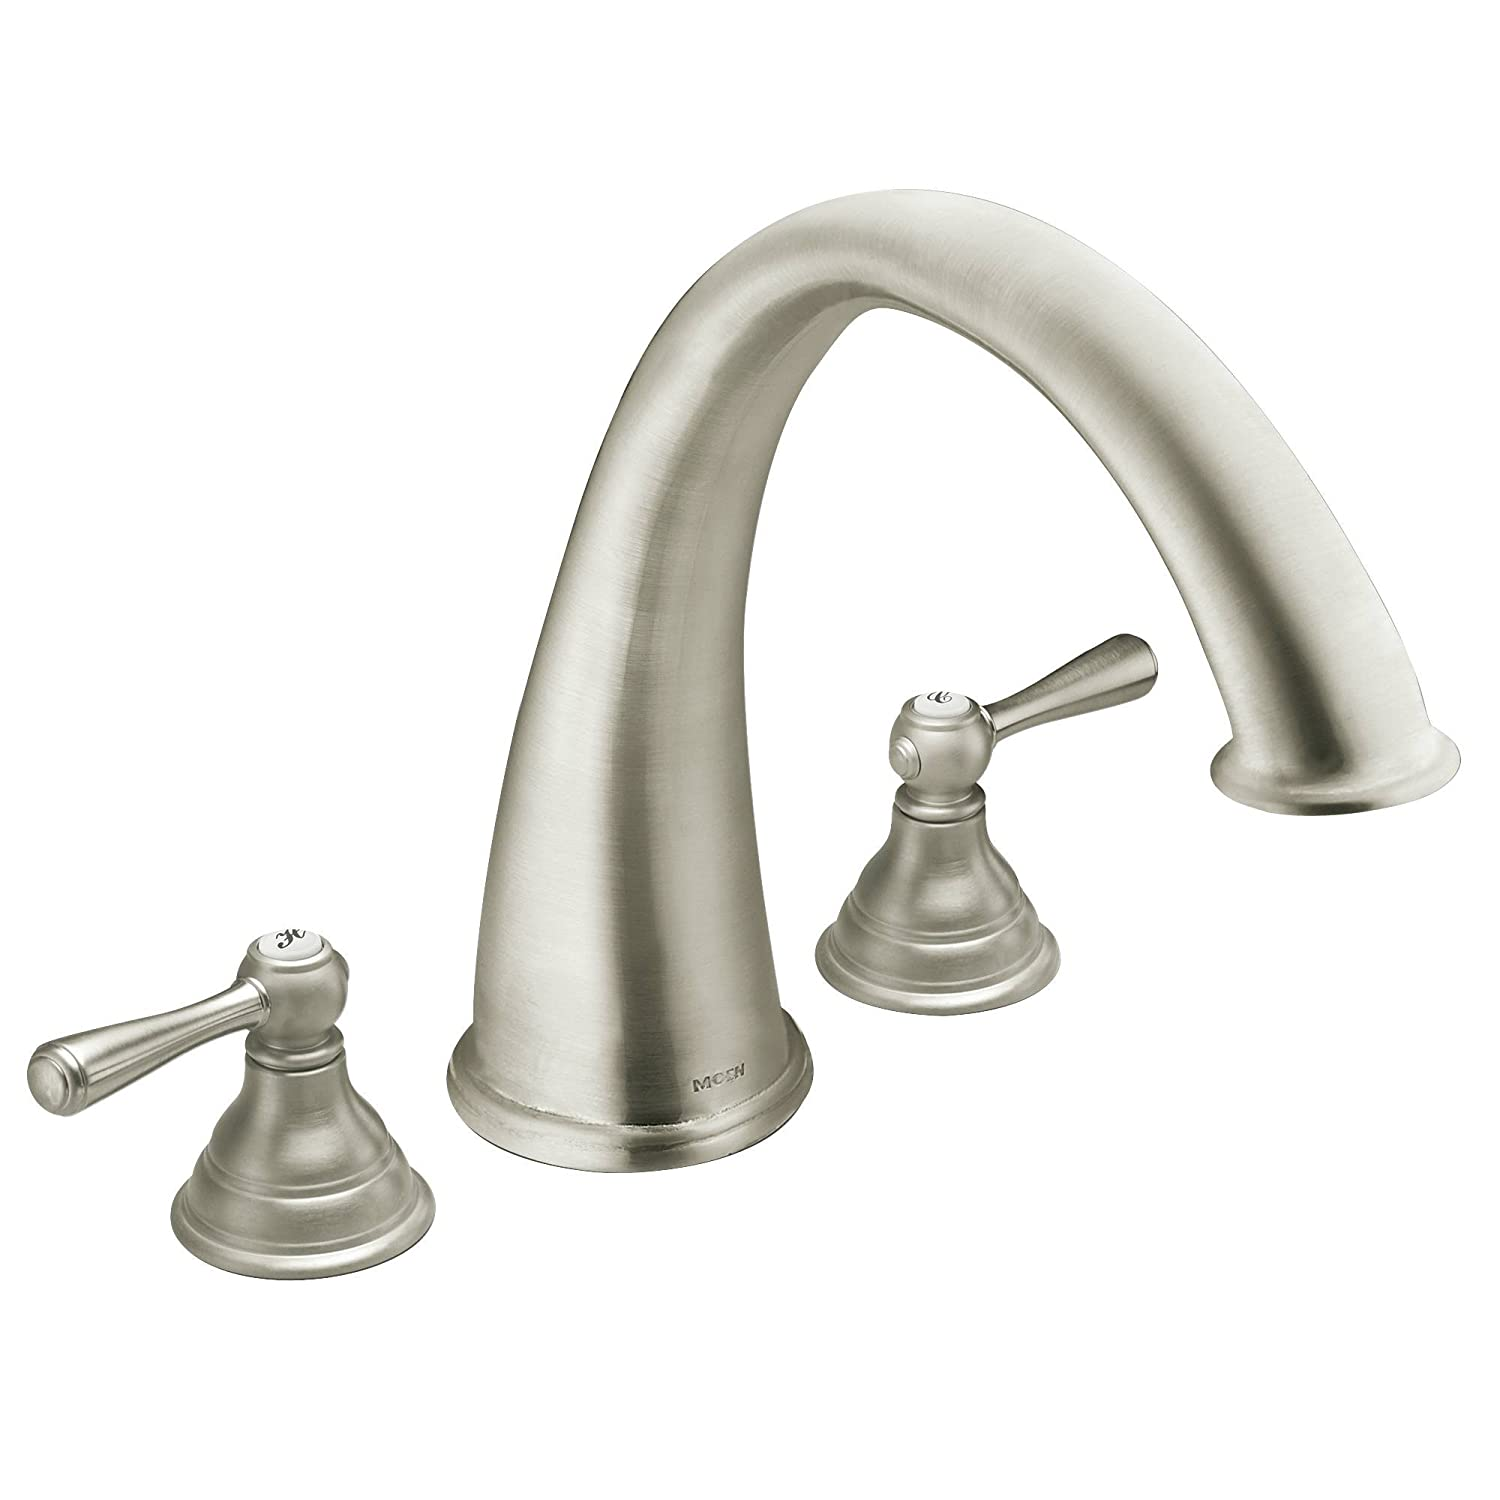 Moen T920BN Kingsley Two-Handle High Arc Roman Tub Faucet without ...